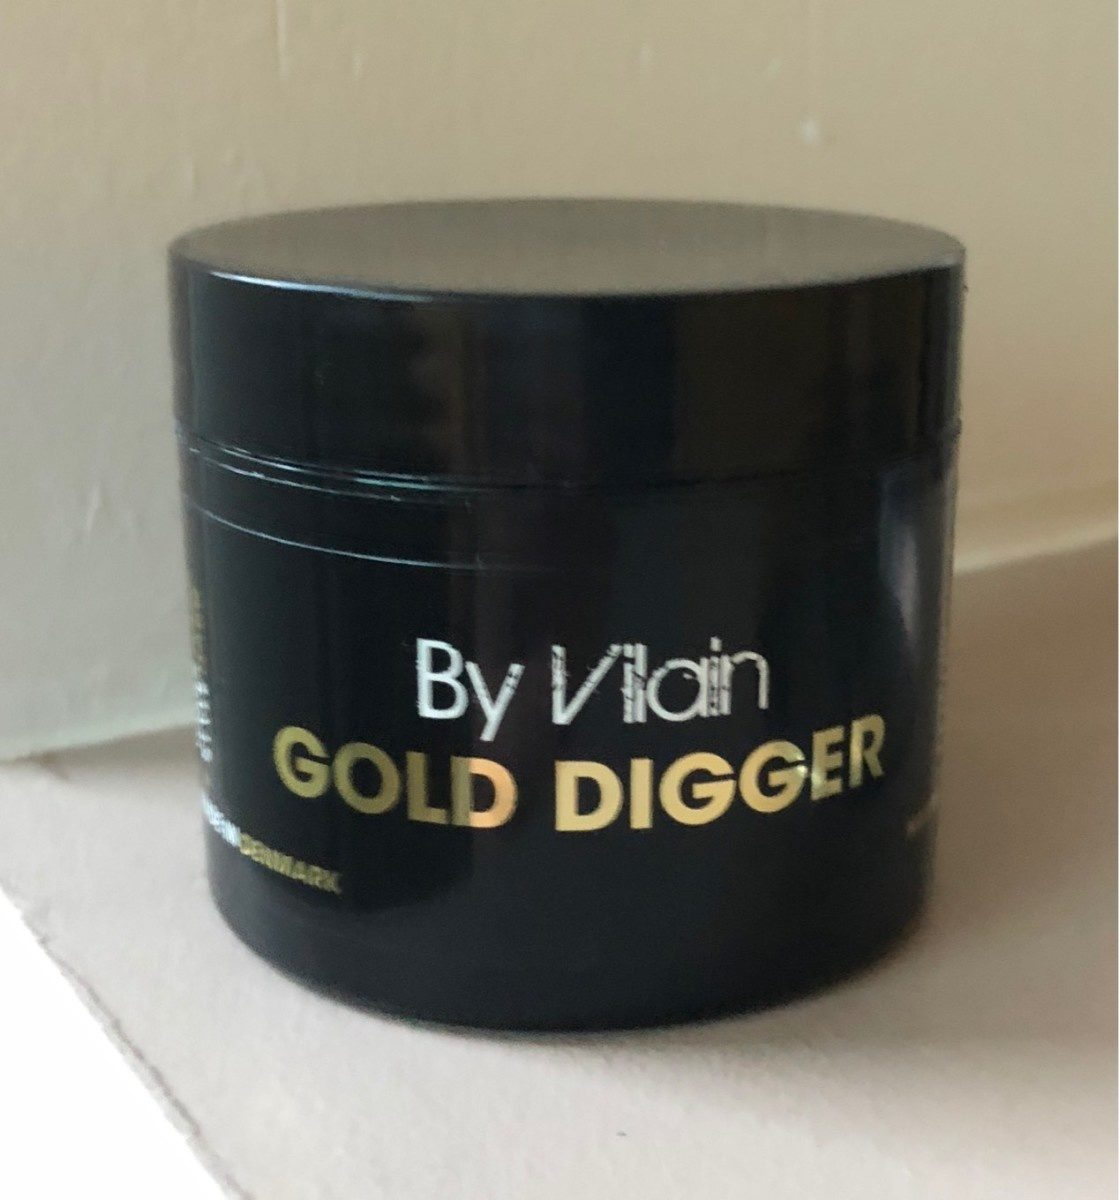 Gold Digger - Product